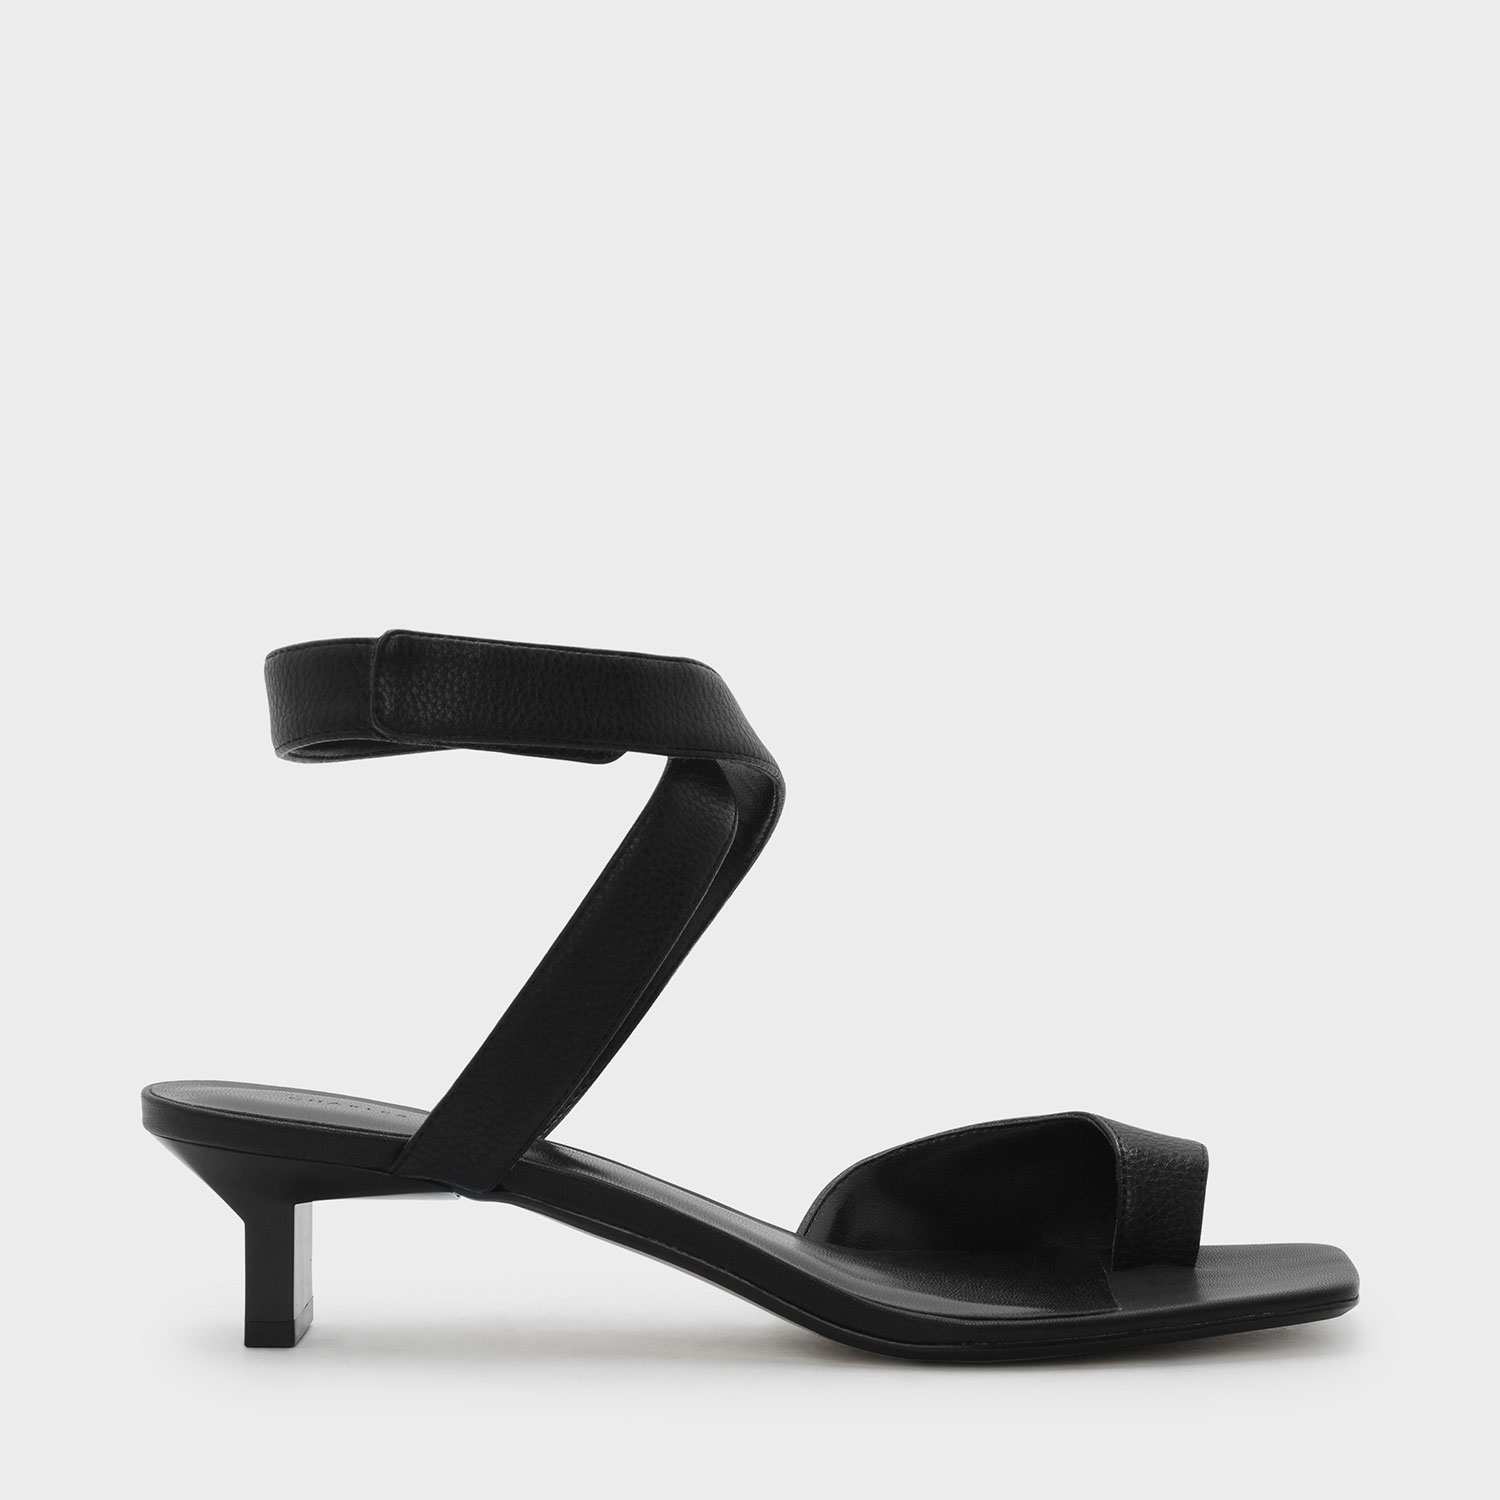 5b08fdc9ae543 CHARLES   KEITH Tapered Heel Thong Sandals